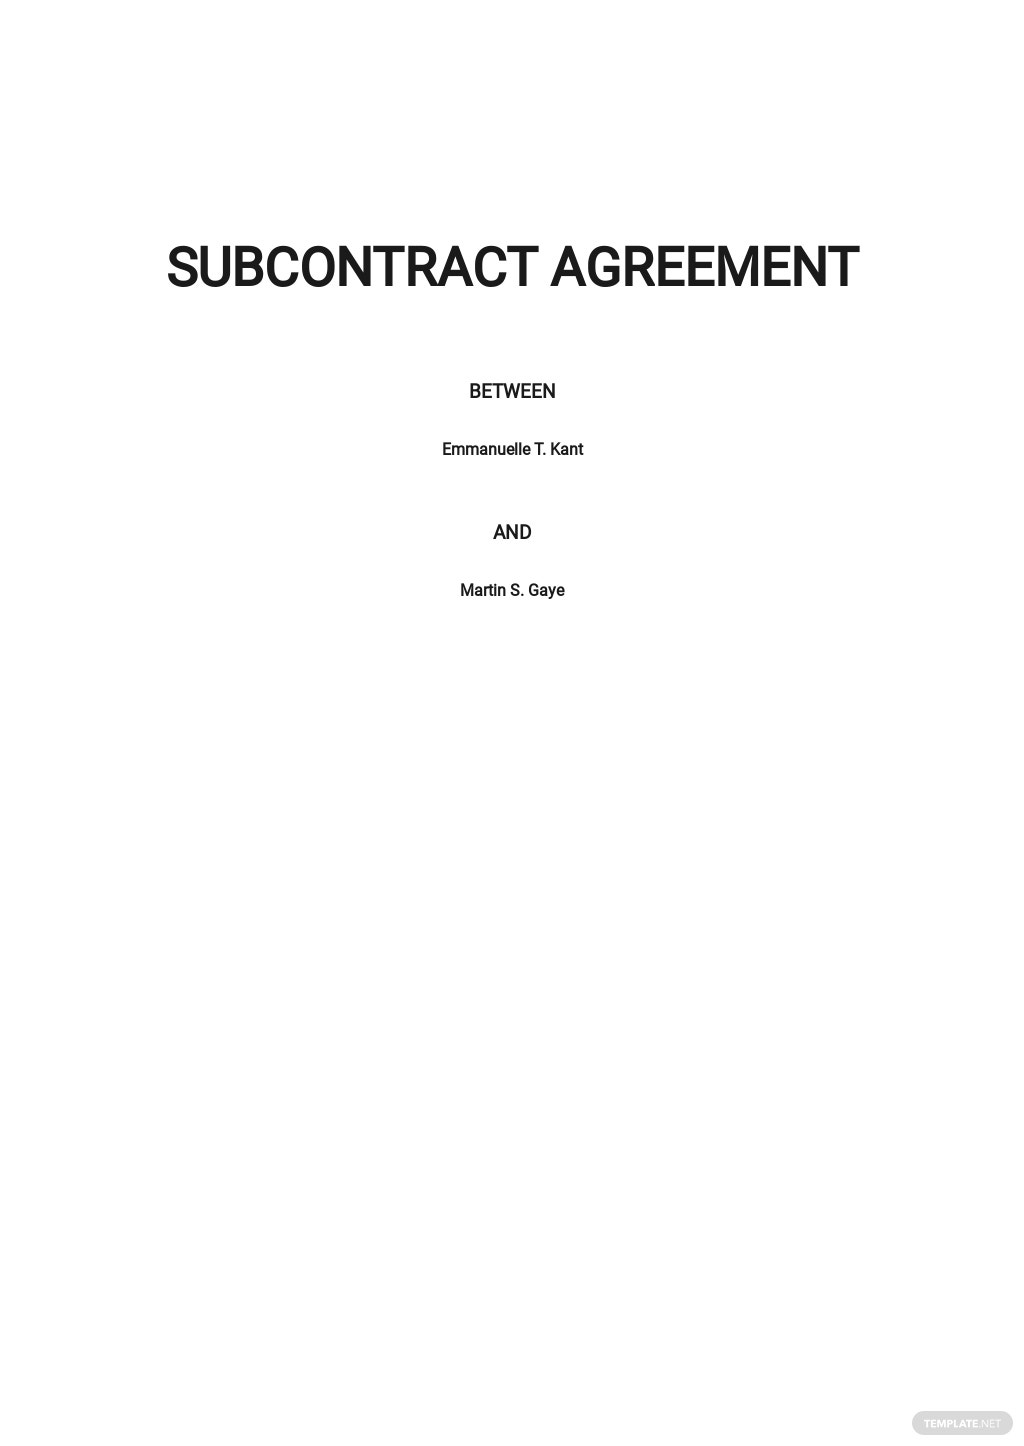 Free Basic Subcontract Agreement Template.jpe